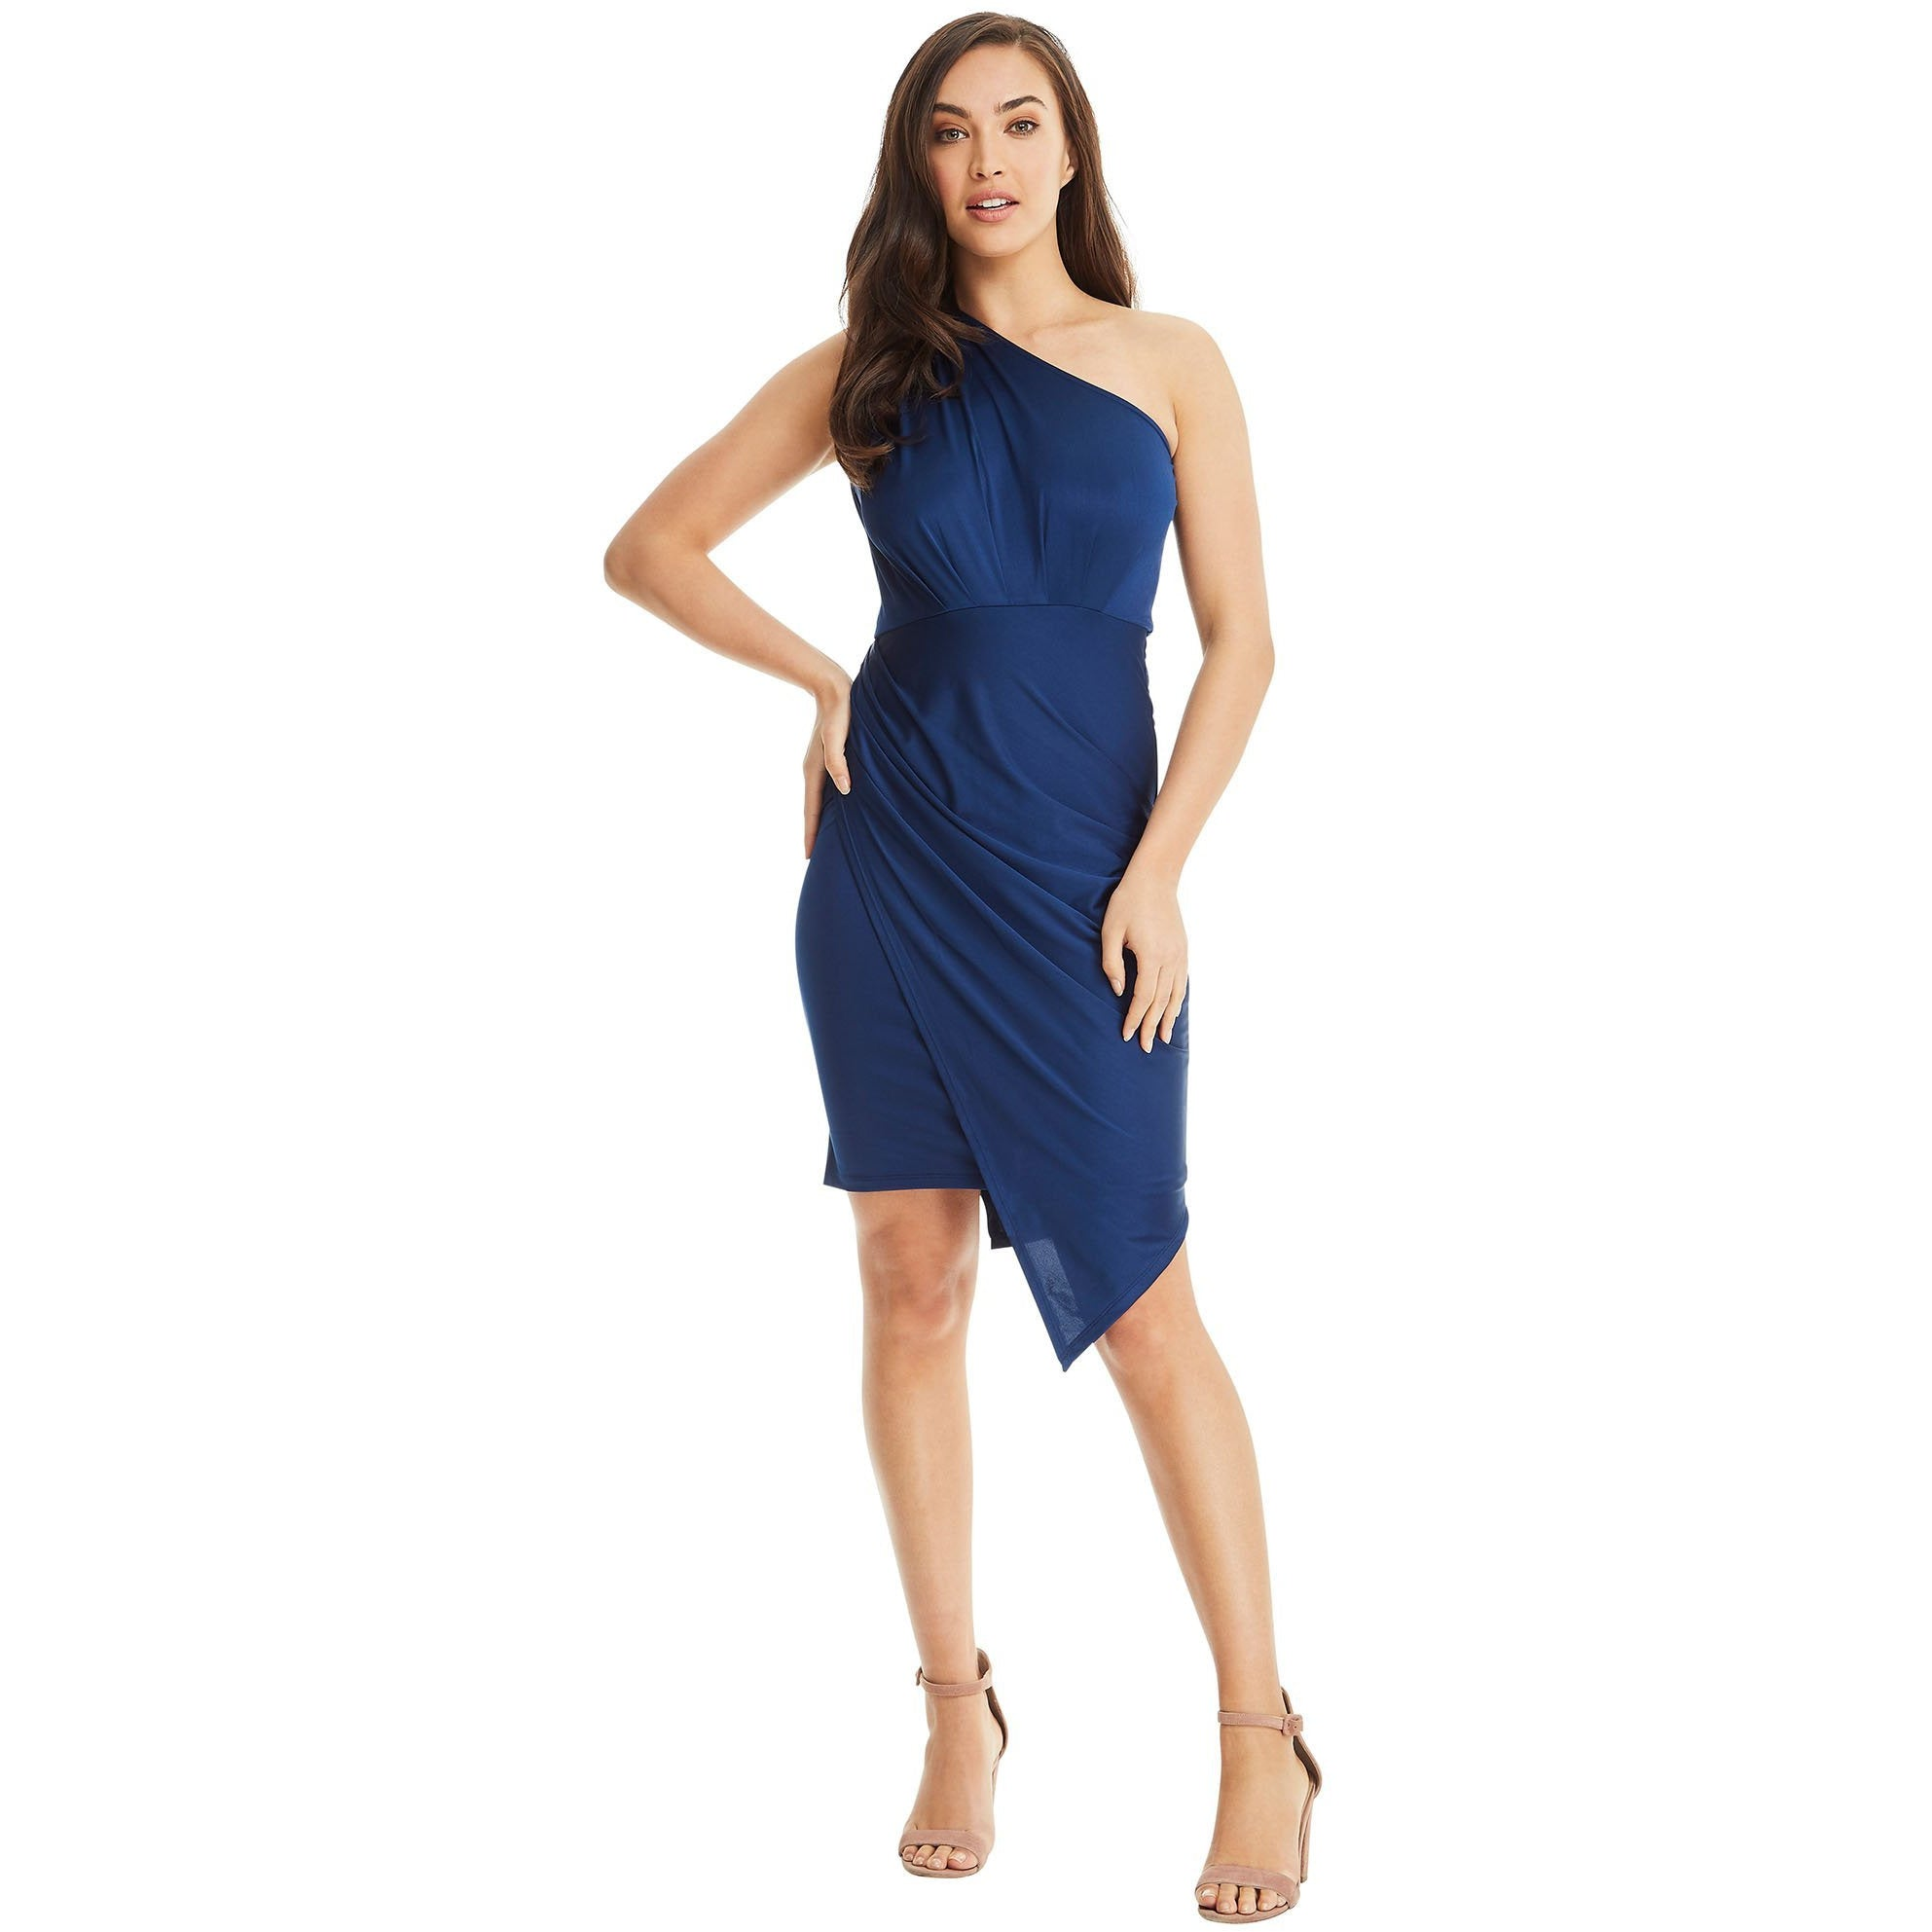 One Shoulder Asymmetrical Dress - Dark Blue - Miraposa